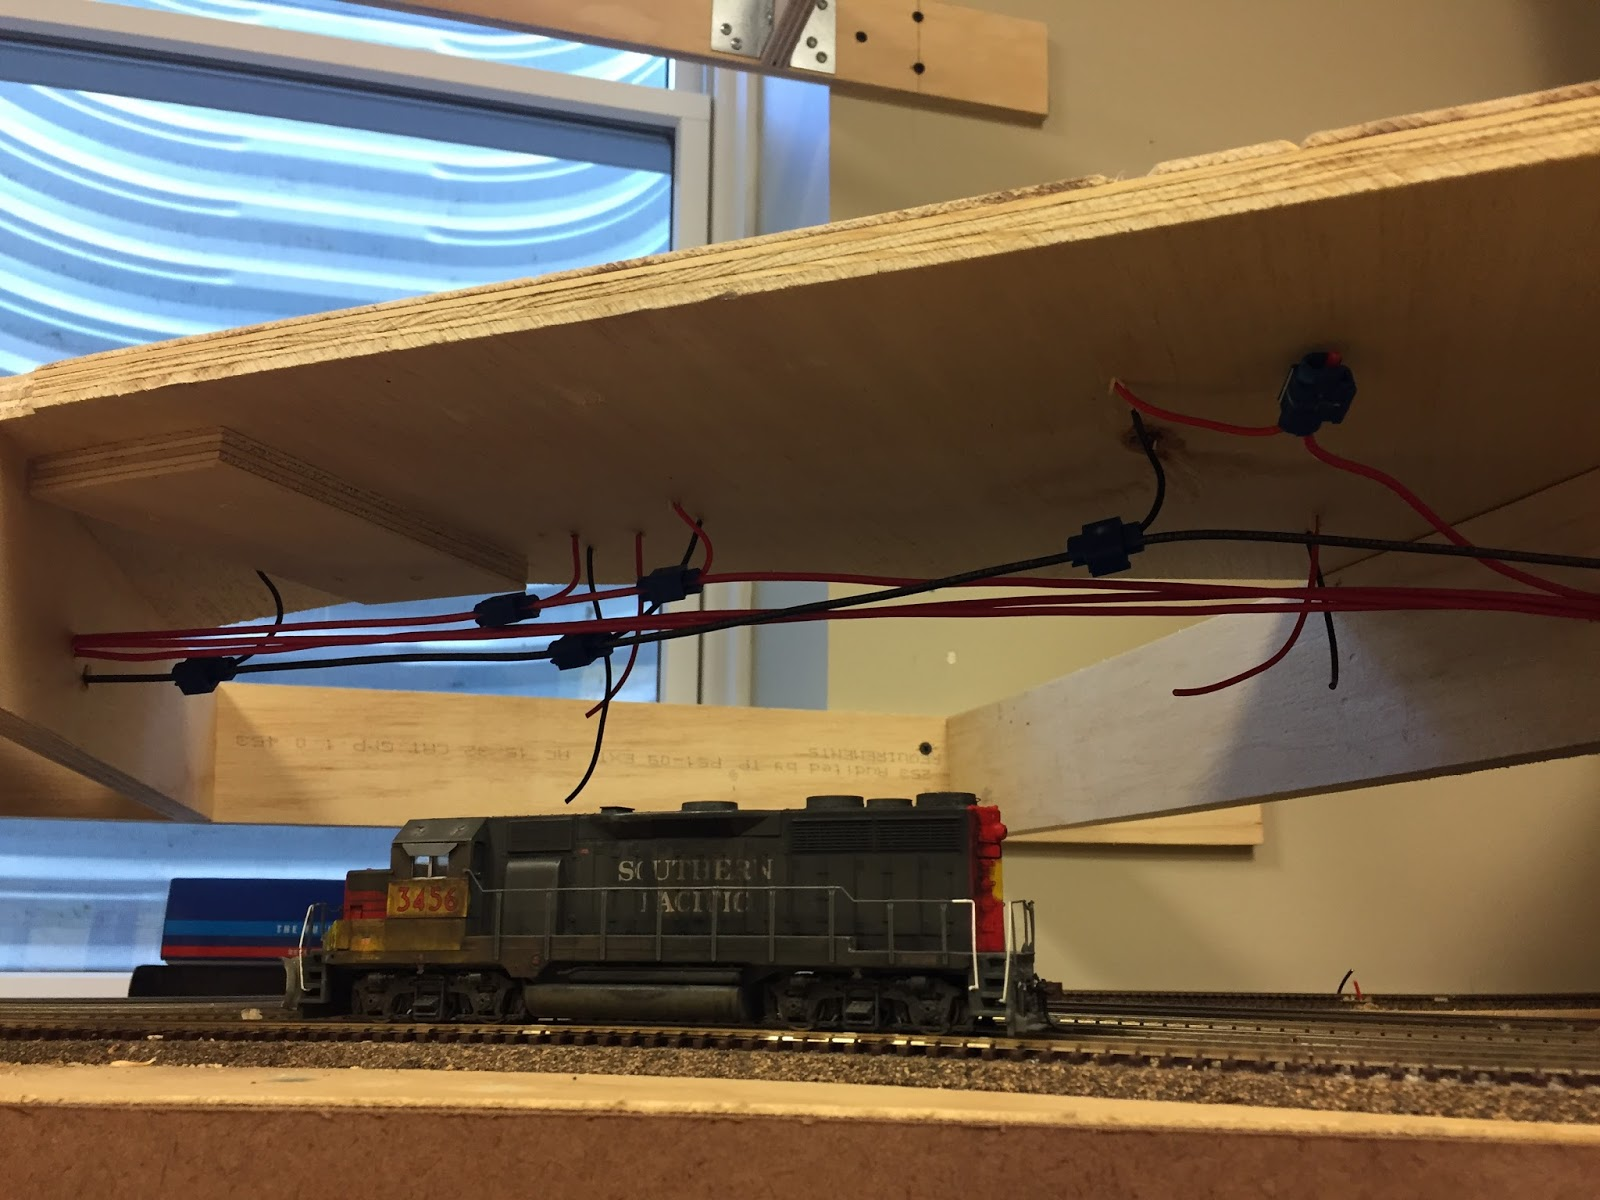 Building Oakridge A Constrction Journal Model Railroad Hobbyist Wiring Ho Tracks For Storage And The Split Of In Yard Right Runaround Mow Left All Turnouts Are Manual Micro Engineering